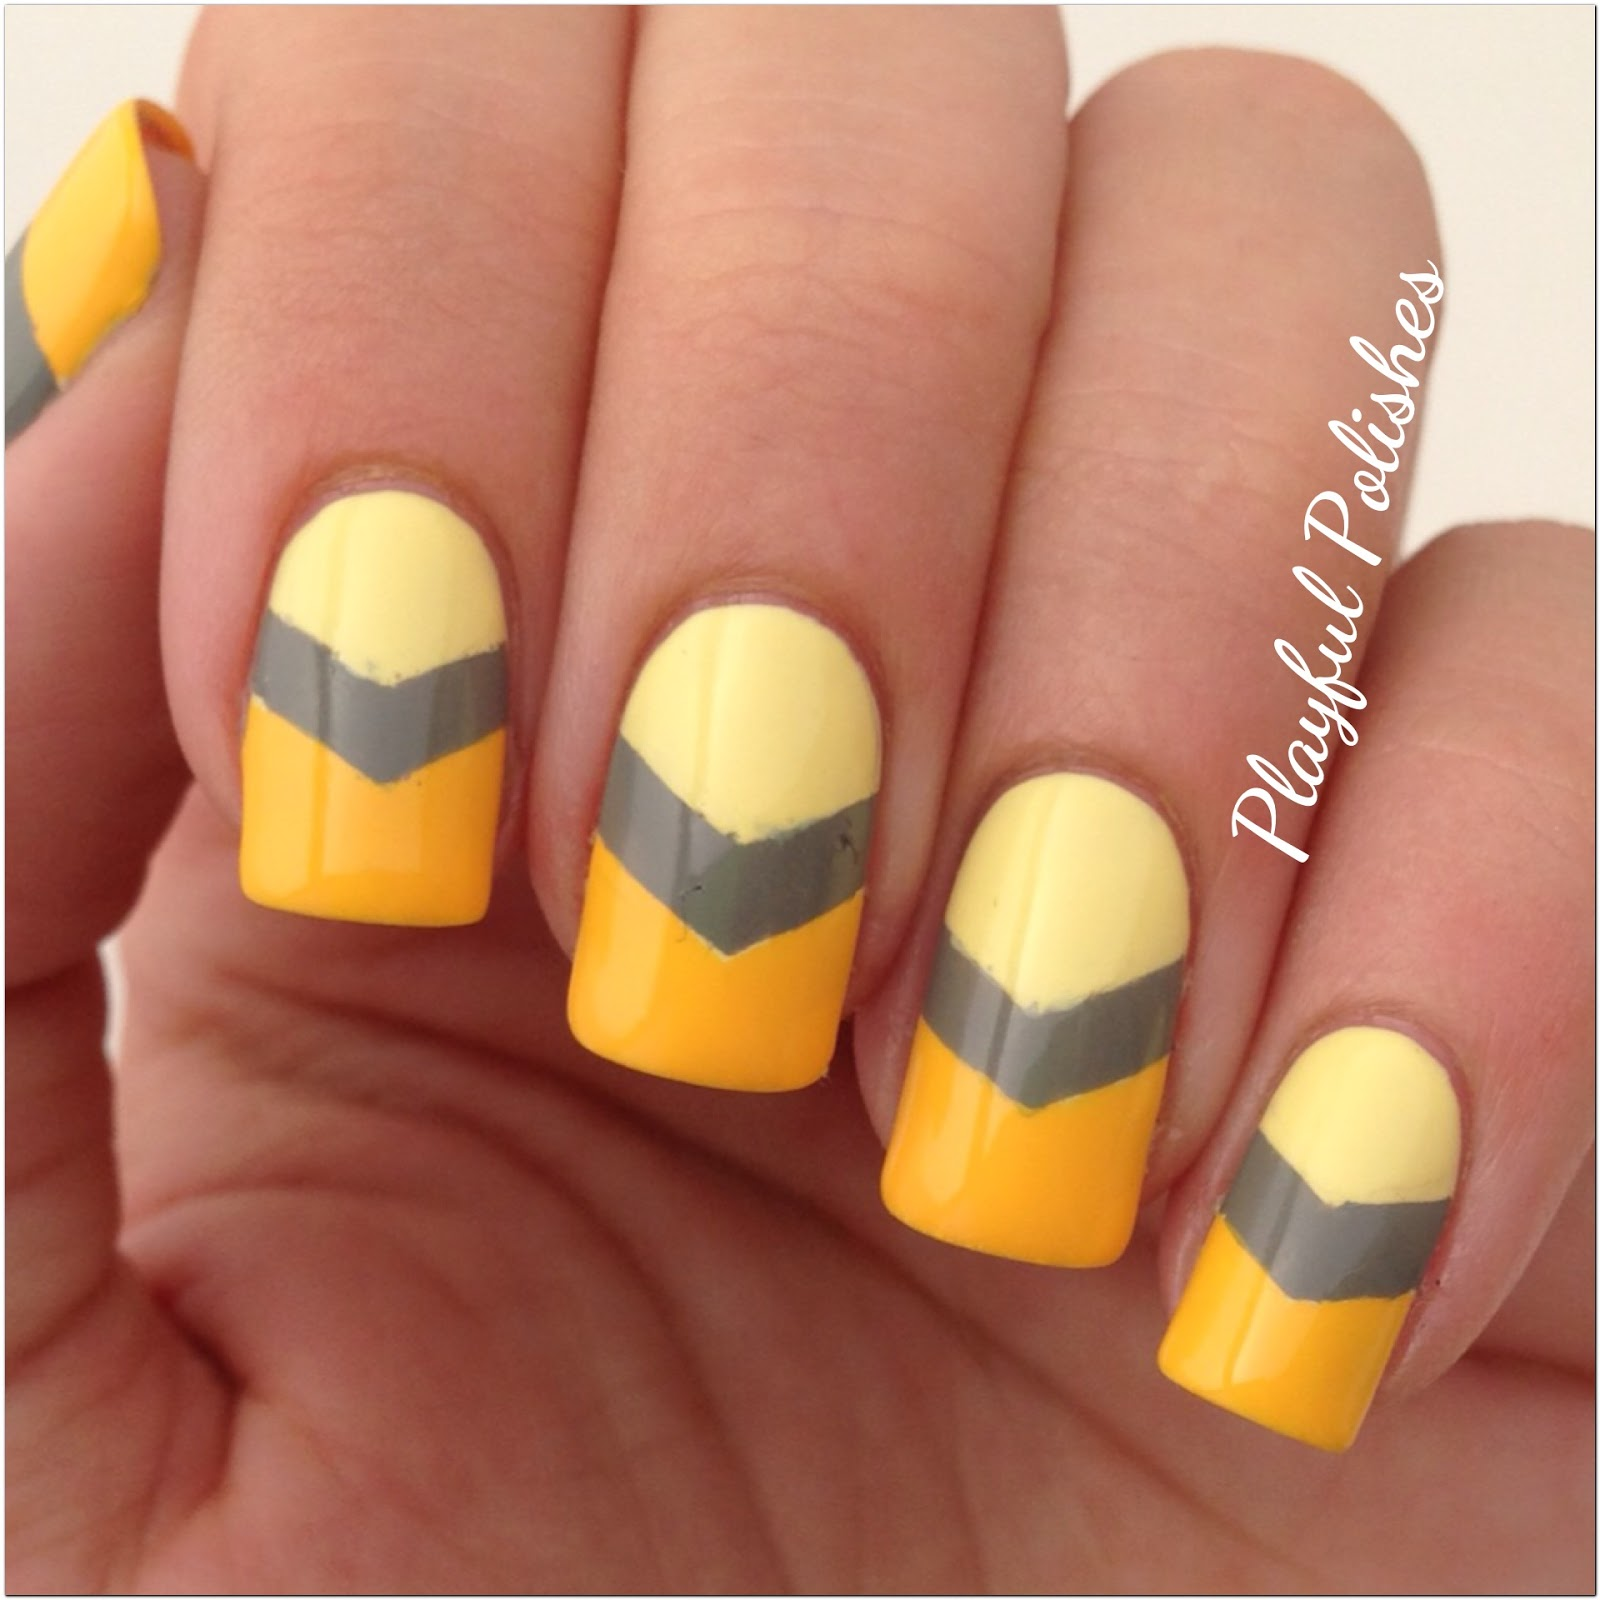 Playful Polishes: 31 DAY NAIL ART CHALLENGE: YELLOW NAILS